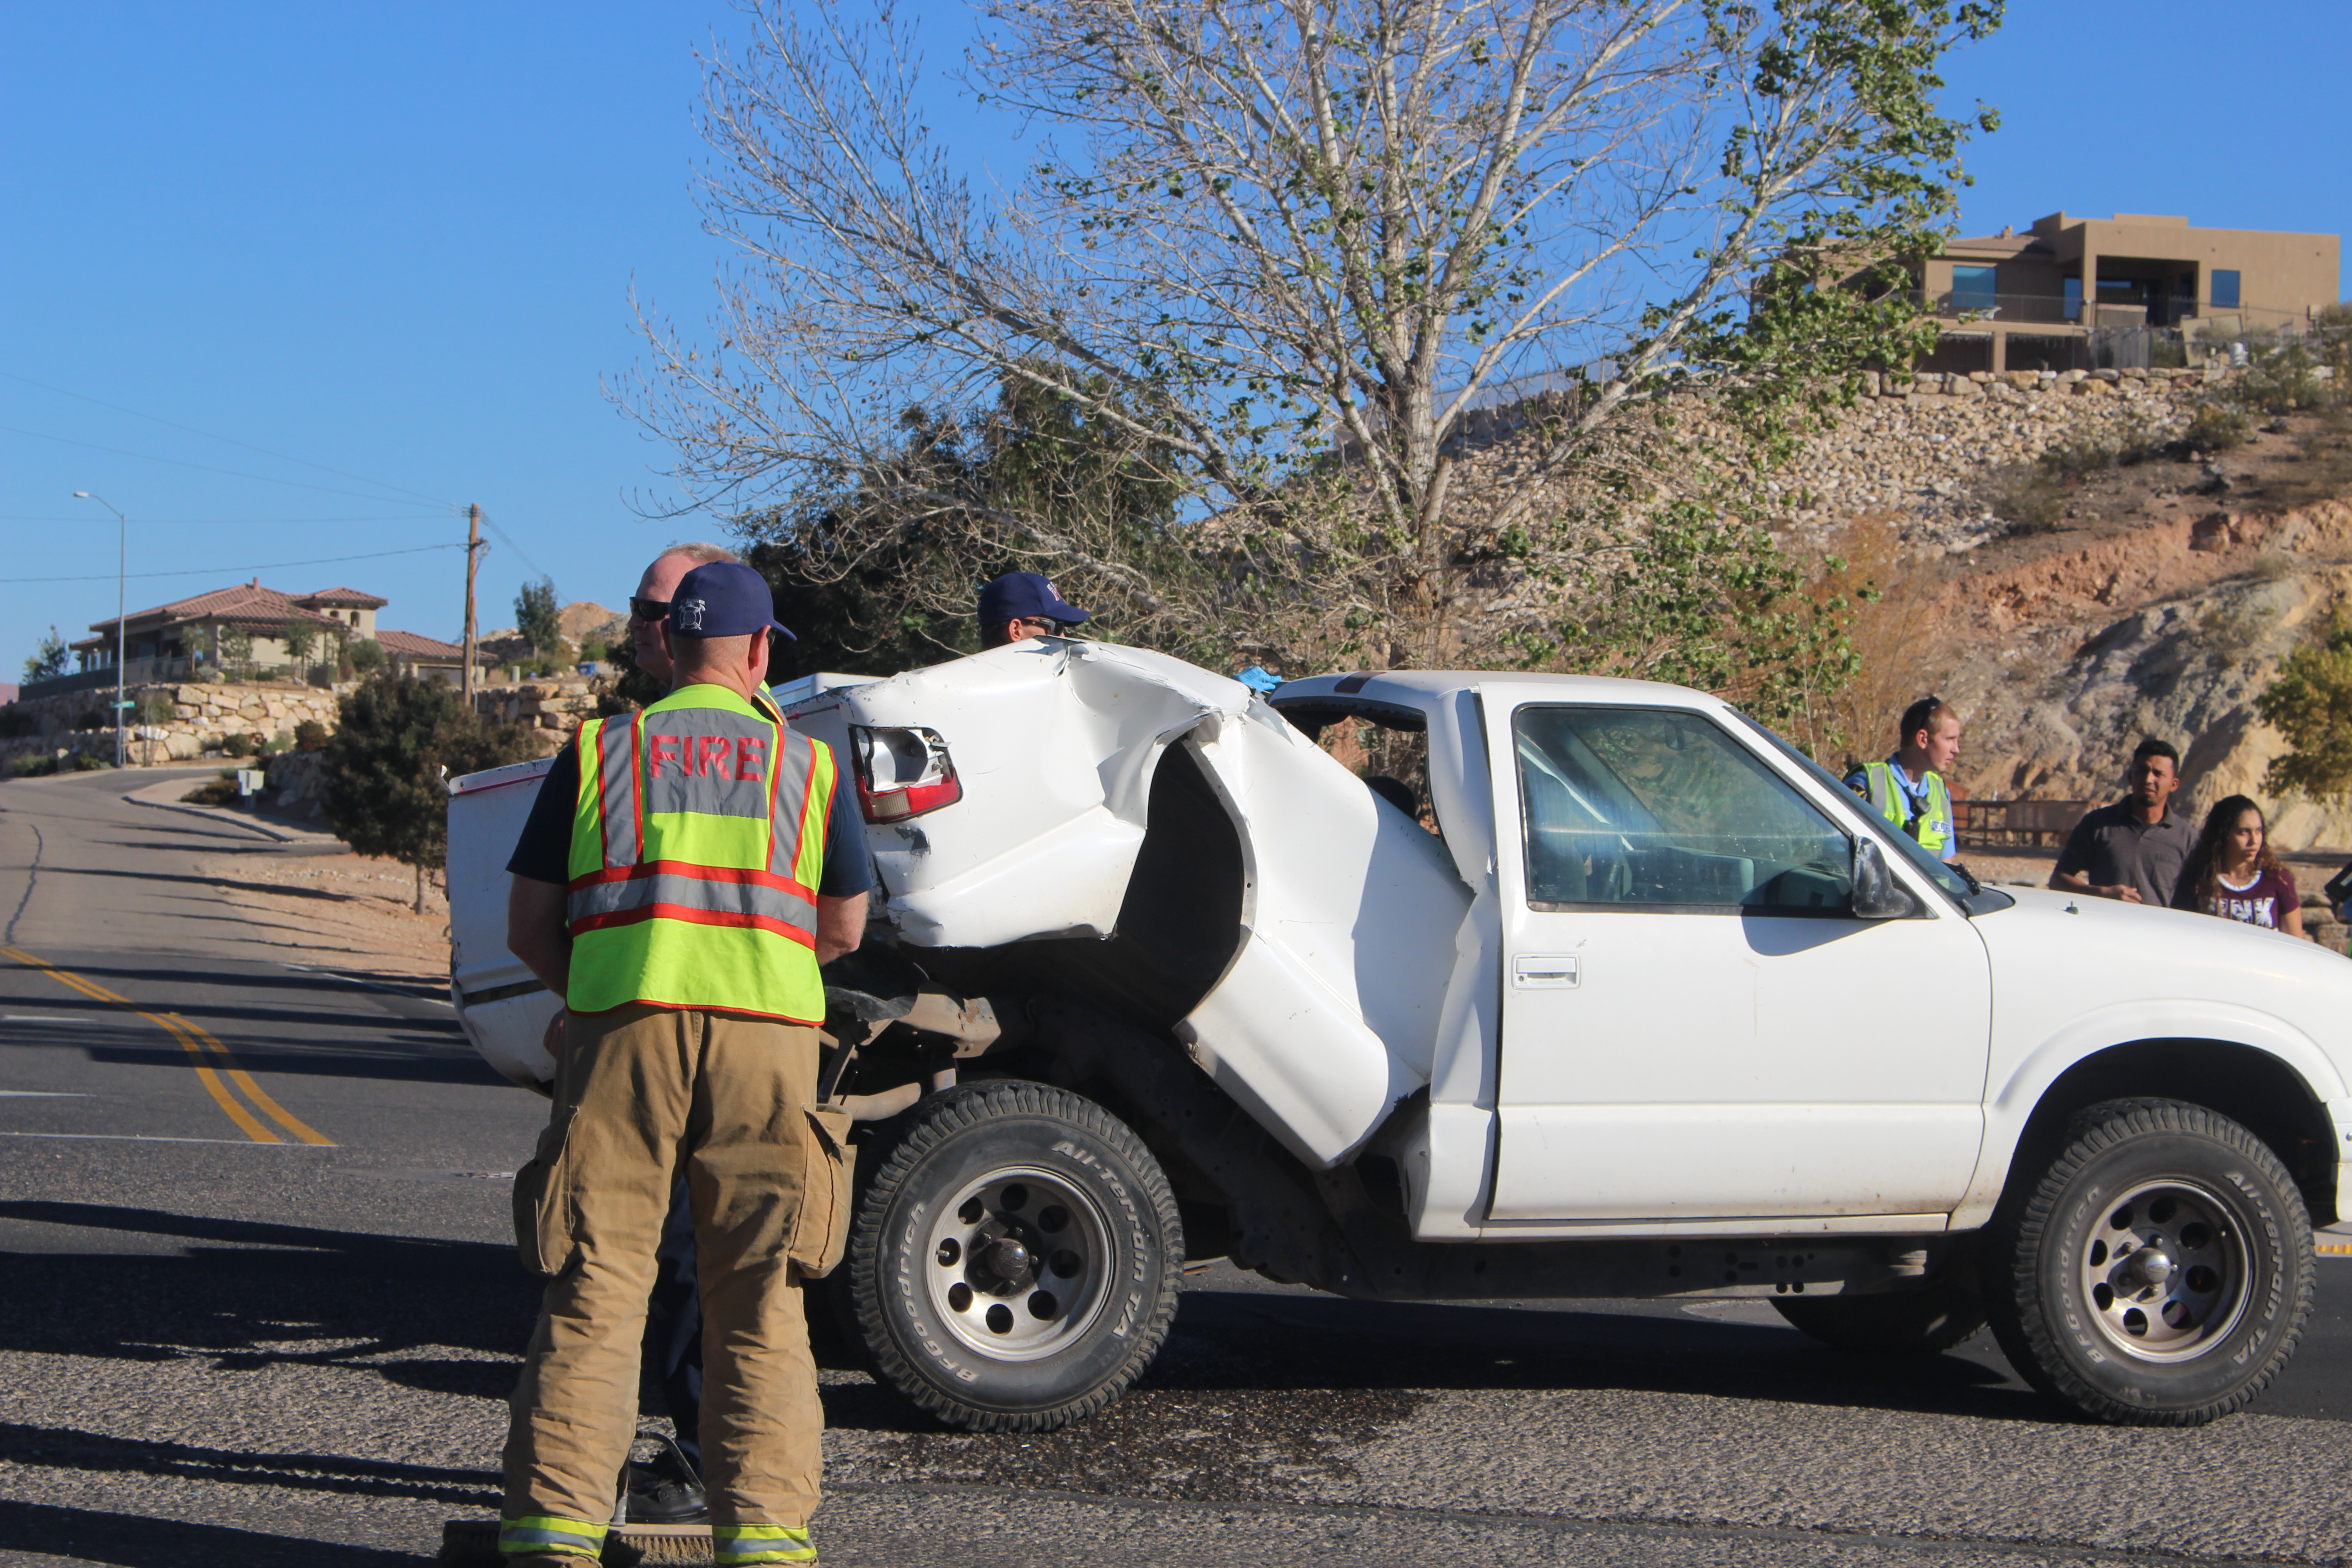 A compact Chevy truck site in the middle of River Road. The vehicle had been hit in the rear by a full-size Dodge Ram pickup. St. George, Utah, Nov. 14, 2016 | Photo by Ric Wayman, St. George News